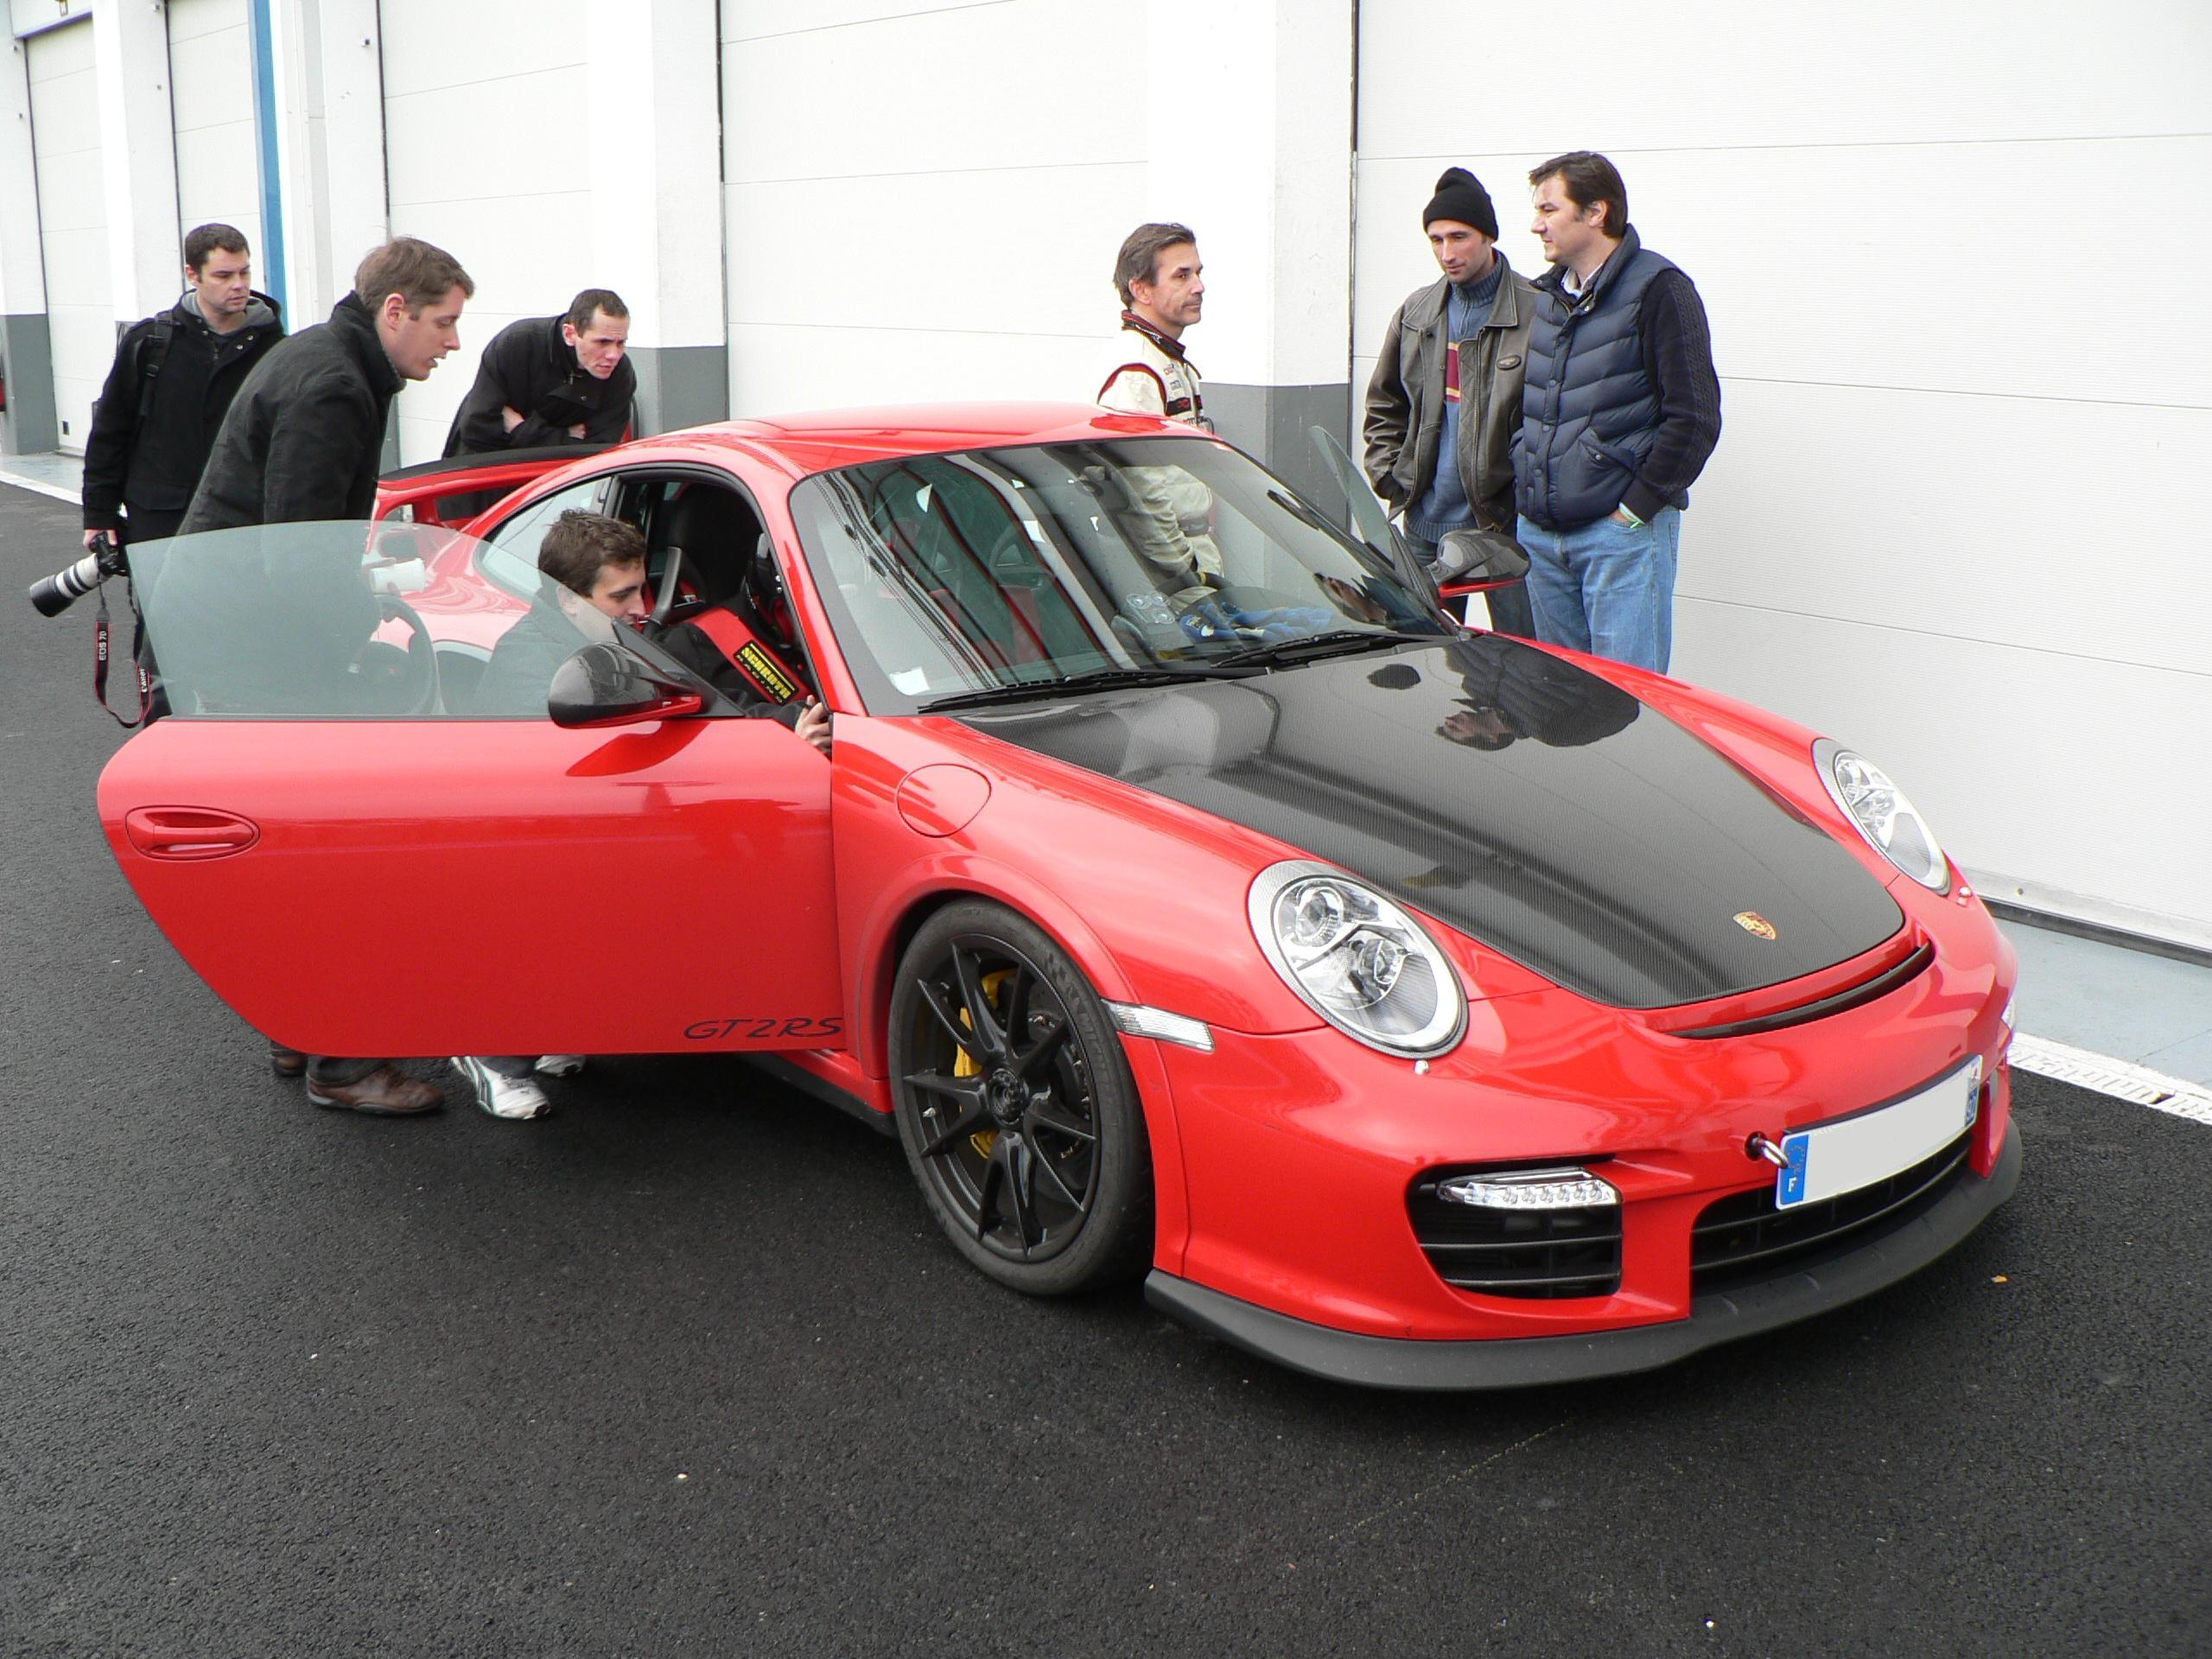 Porsche_911_GT2_RS Extraordinary Porsche 911 Gt2 Rs Used Cars Trend